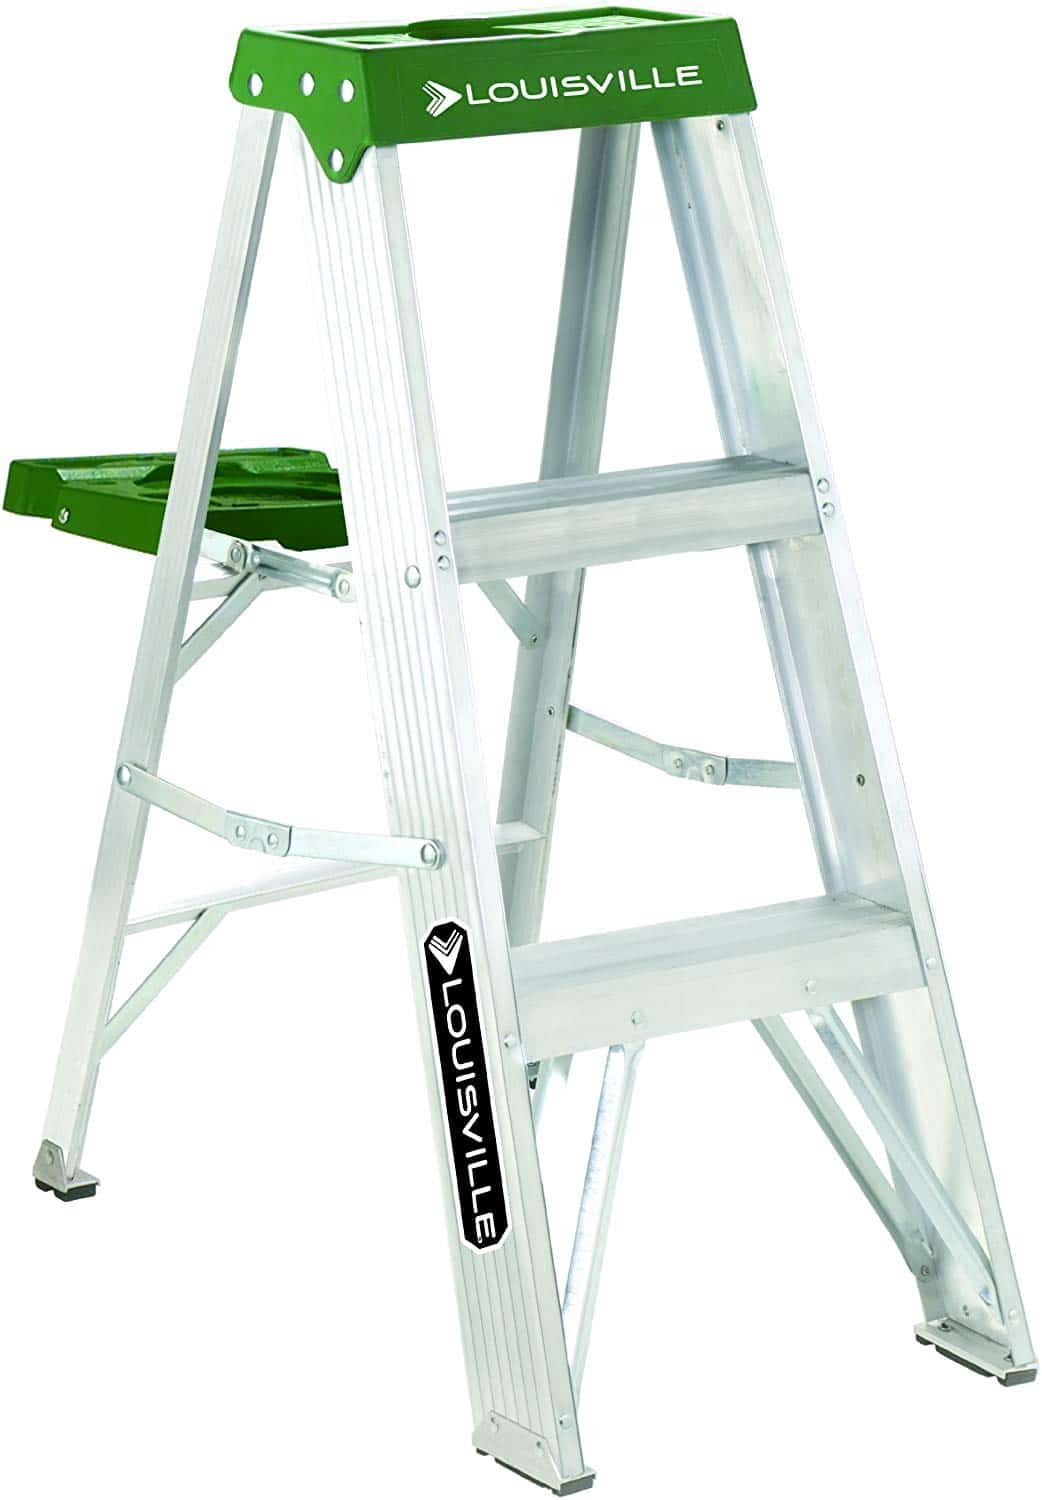 Louisville-Ladder-Aluminum-225-Pound-AS4003